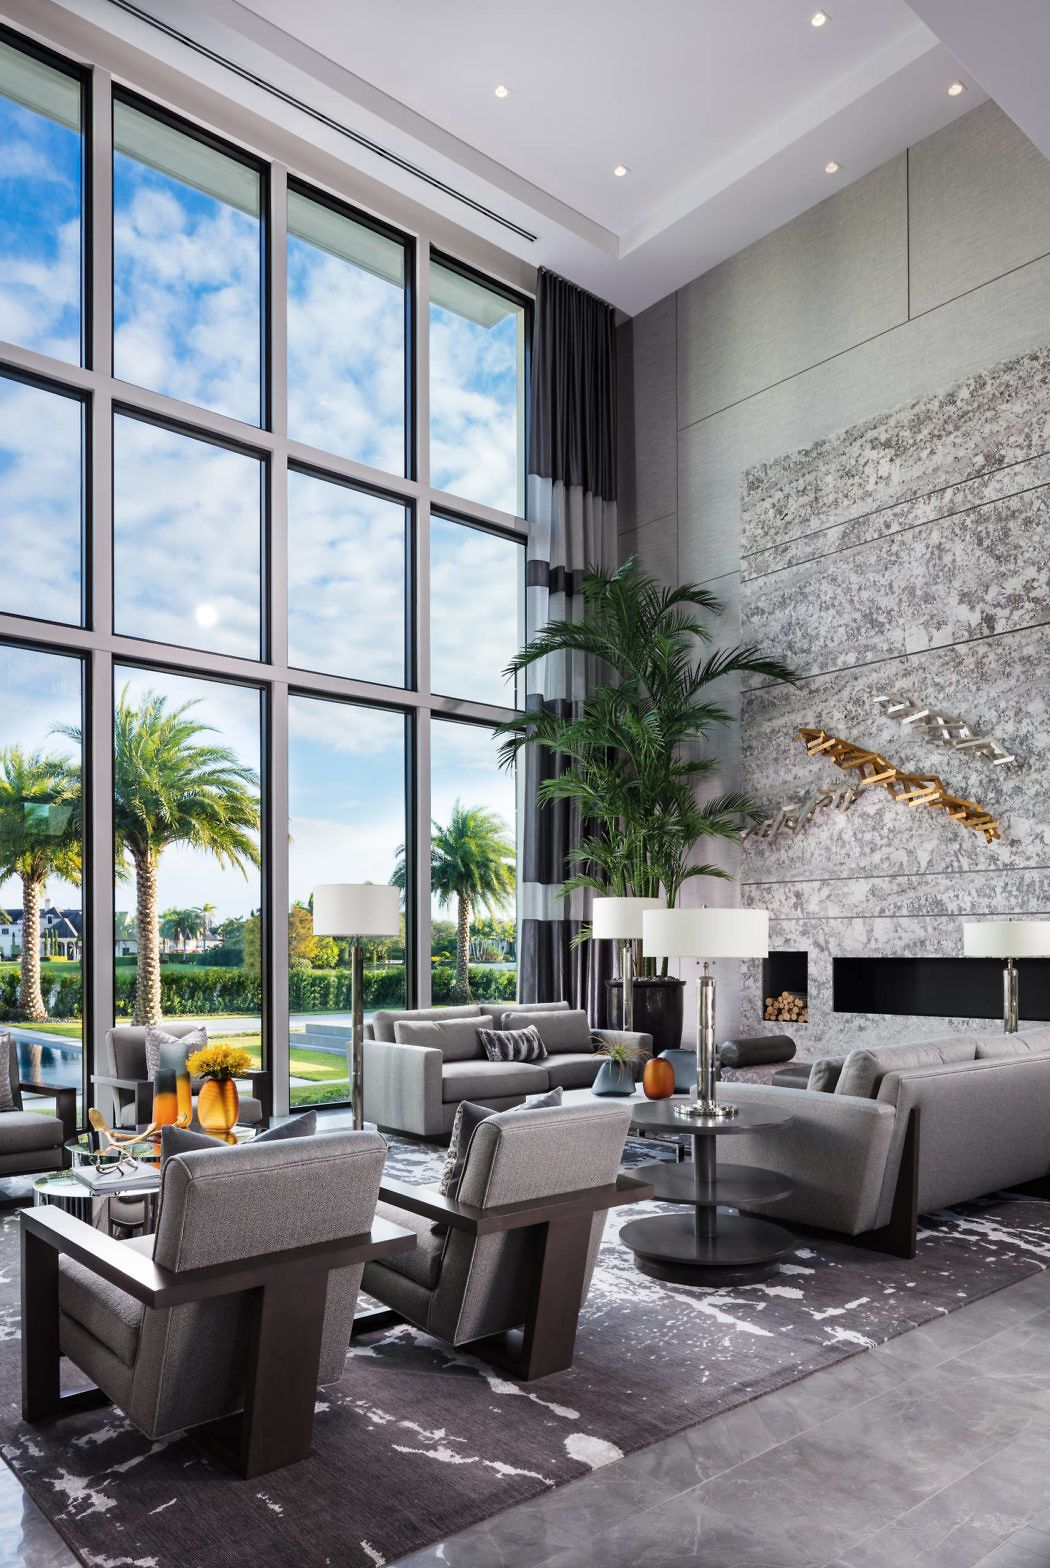 Delray Beach Home By Lesly Maxwell Interiors Using Our Roger Lounge Chairs And Clip Sofa Elegant Living Room Interior Home